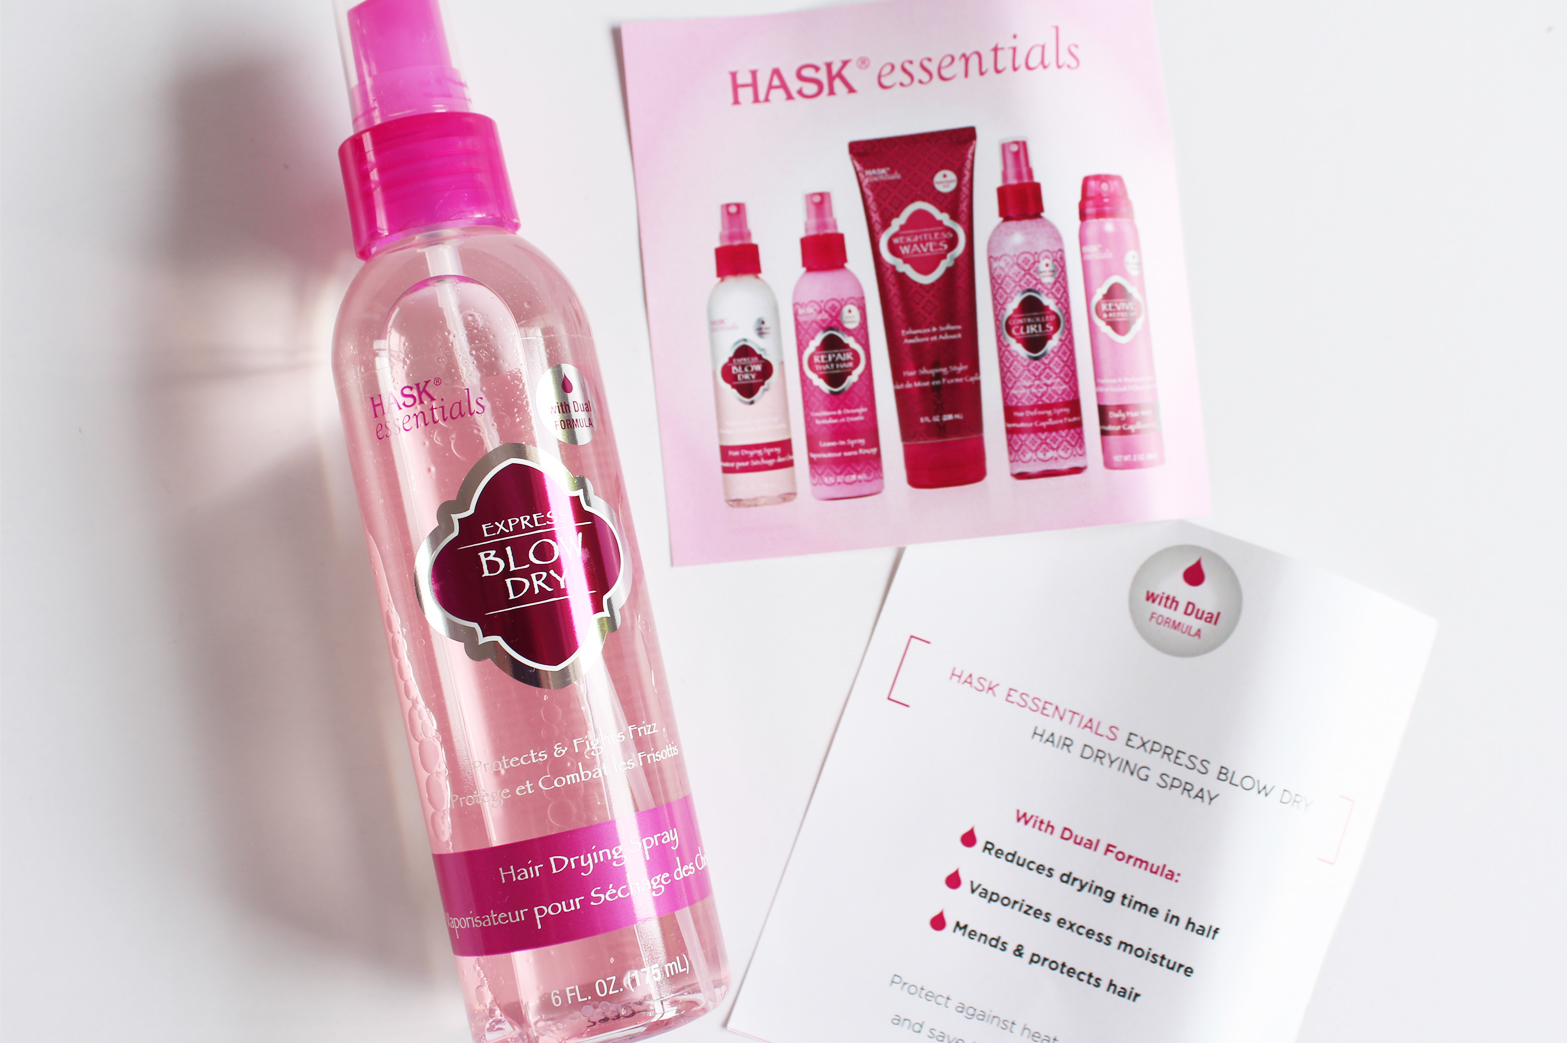 HASK ESSENTIALS | Repair That Hair + Express Blow Dry - CassandraMyee